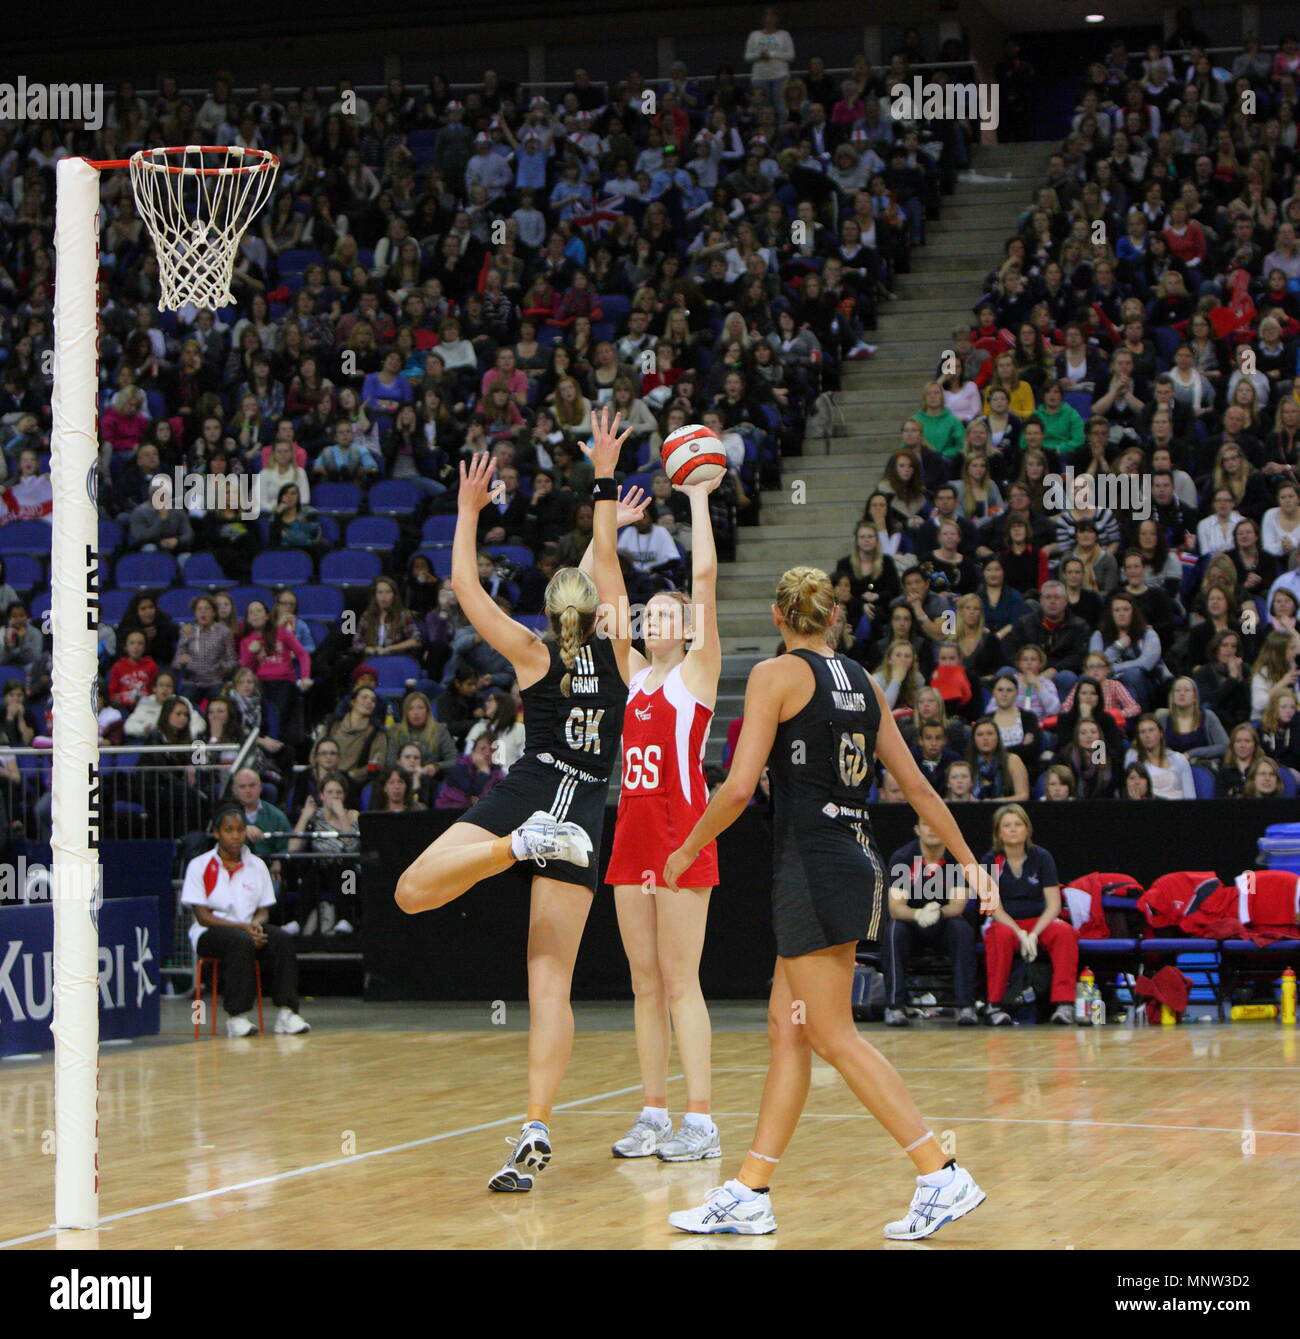 Katrina Grant defends against Joanne Harten of England during the FIAT International Netball Series match England vs New Zealand played at The 02 Arena in London, England, UK. - Stock Image